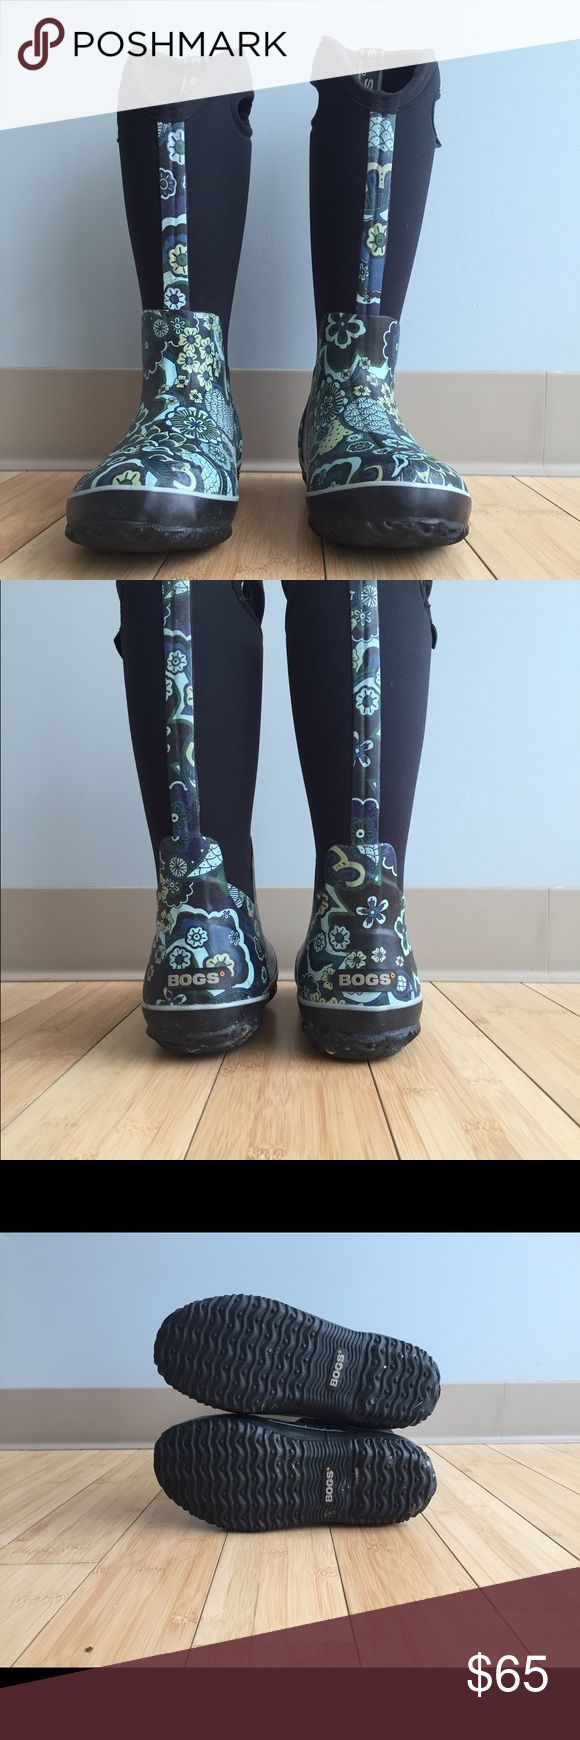 Bogs Rain Boots Floral Bogs boots. Size 7. Like new. Bogs Shoes Winter & Rain Boots